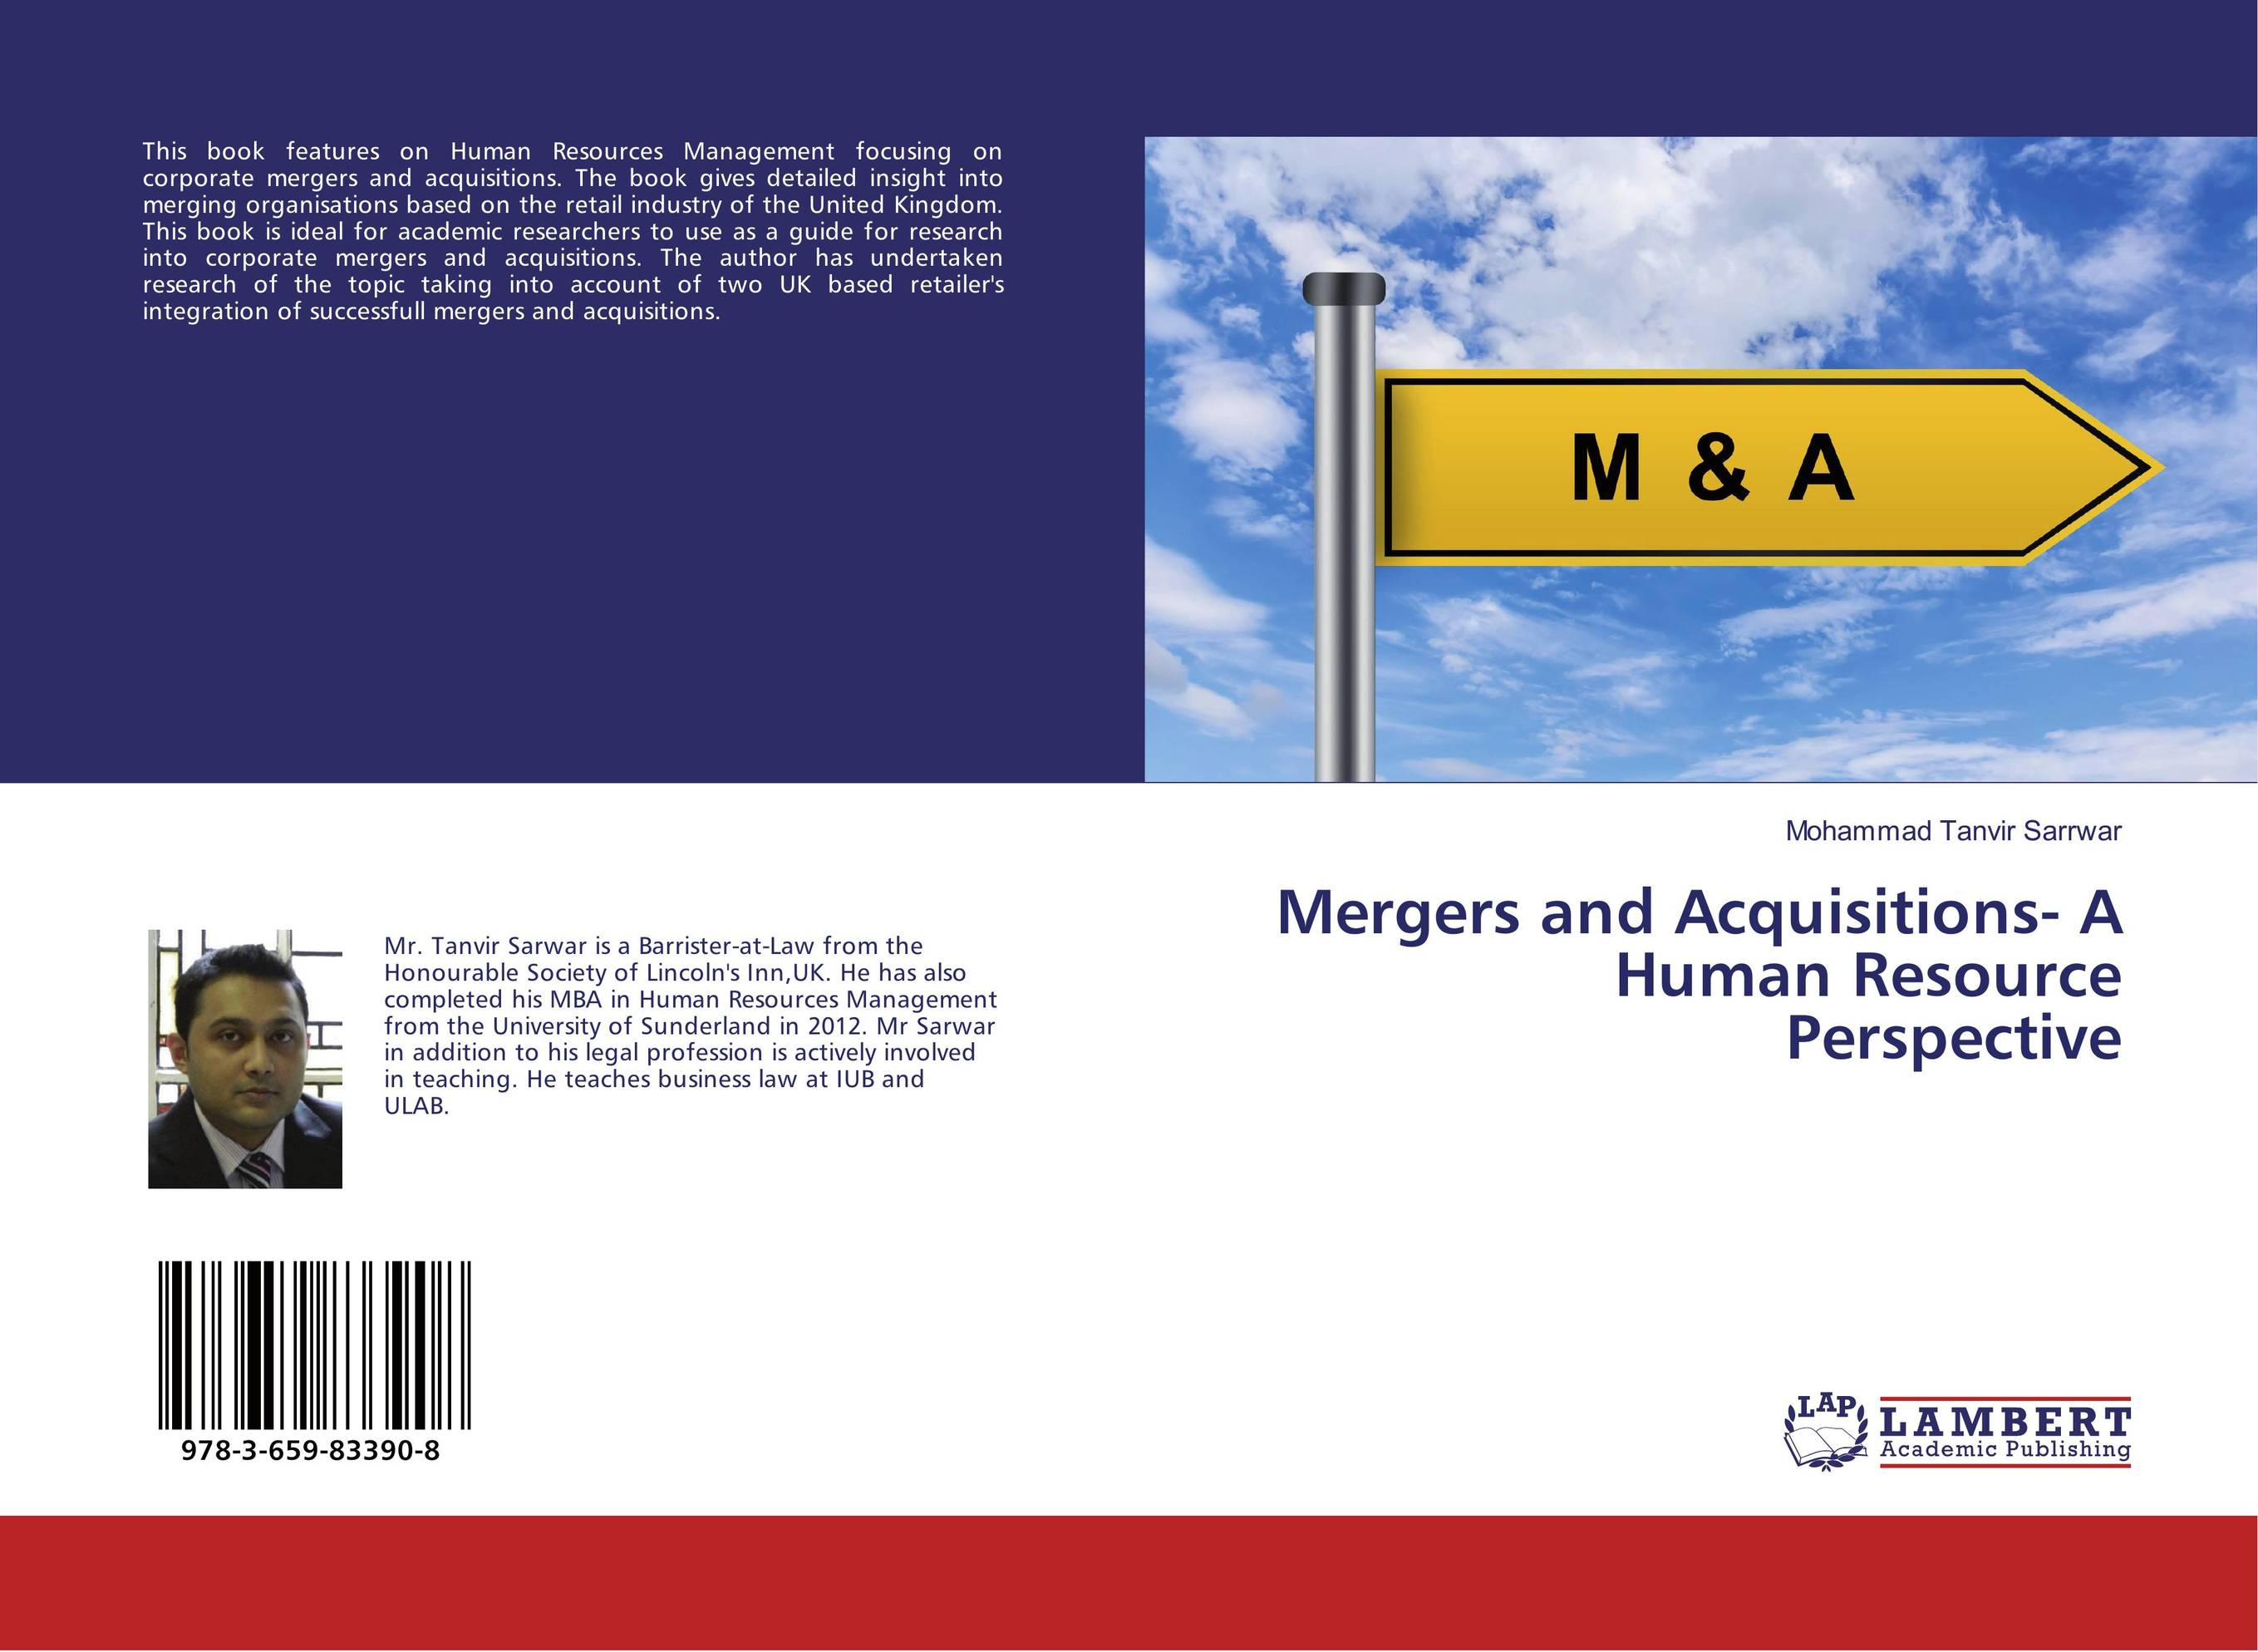 Mergers and Acquisitions- A Human Resource Perspective цена и фото